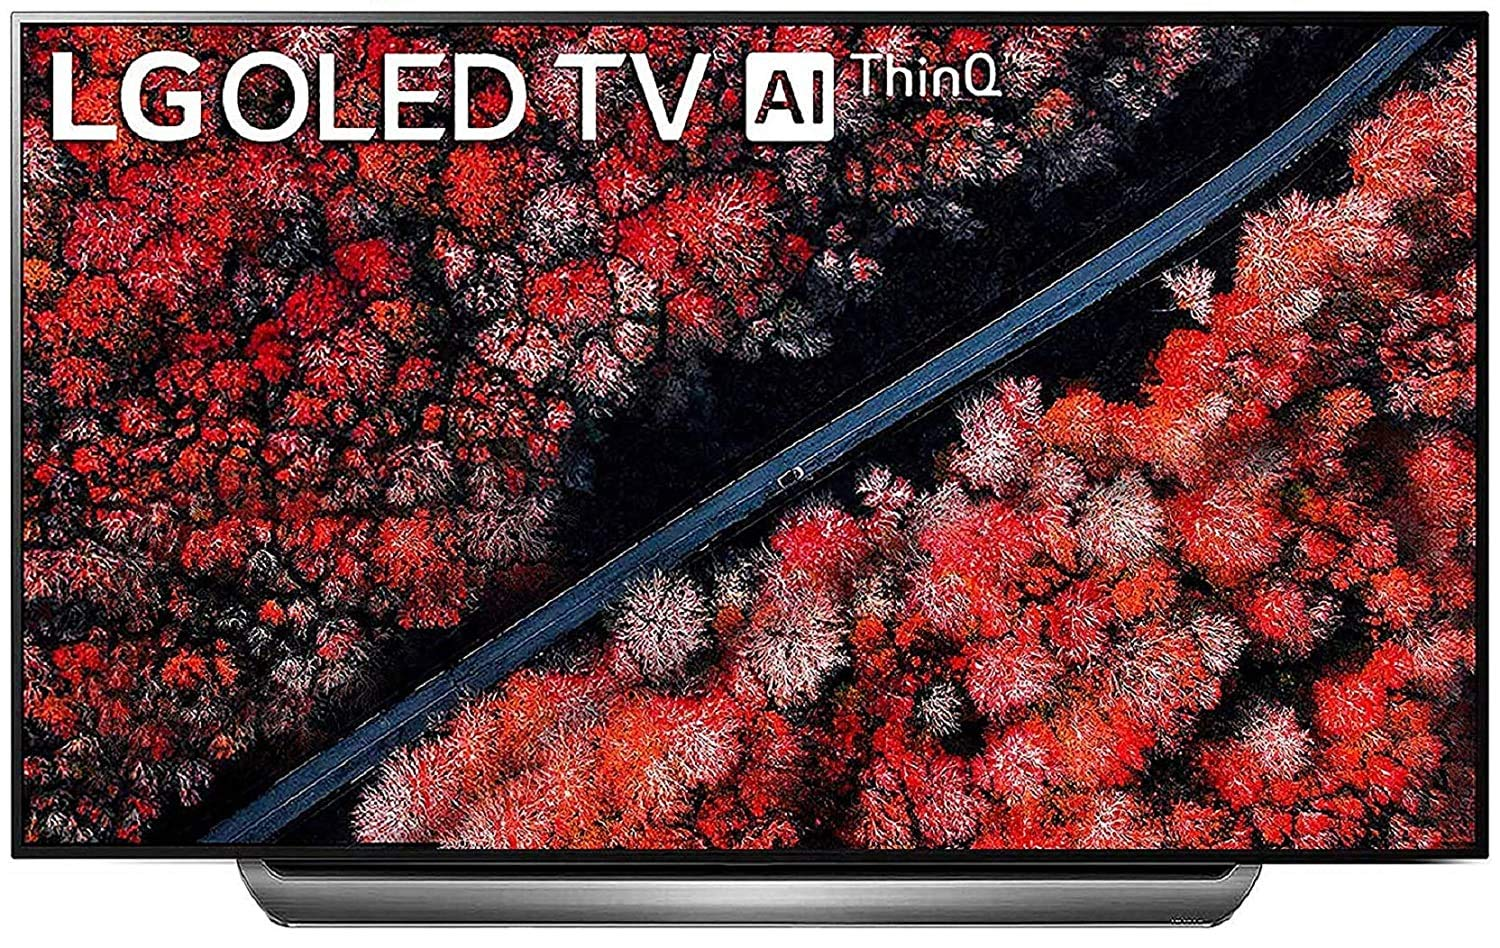 LG OLED TV In India